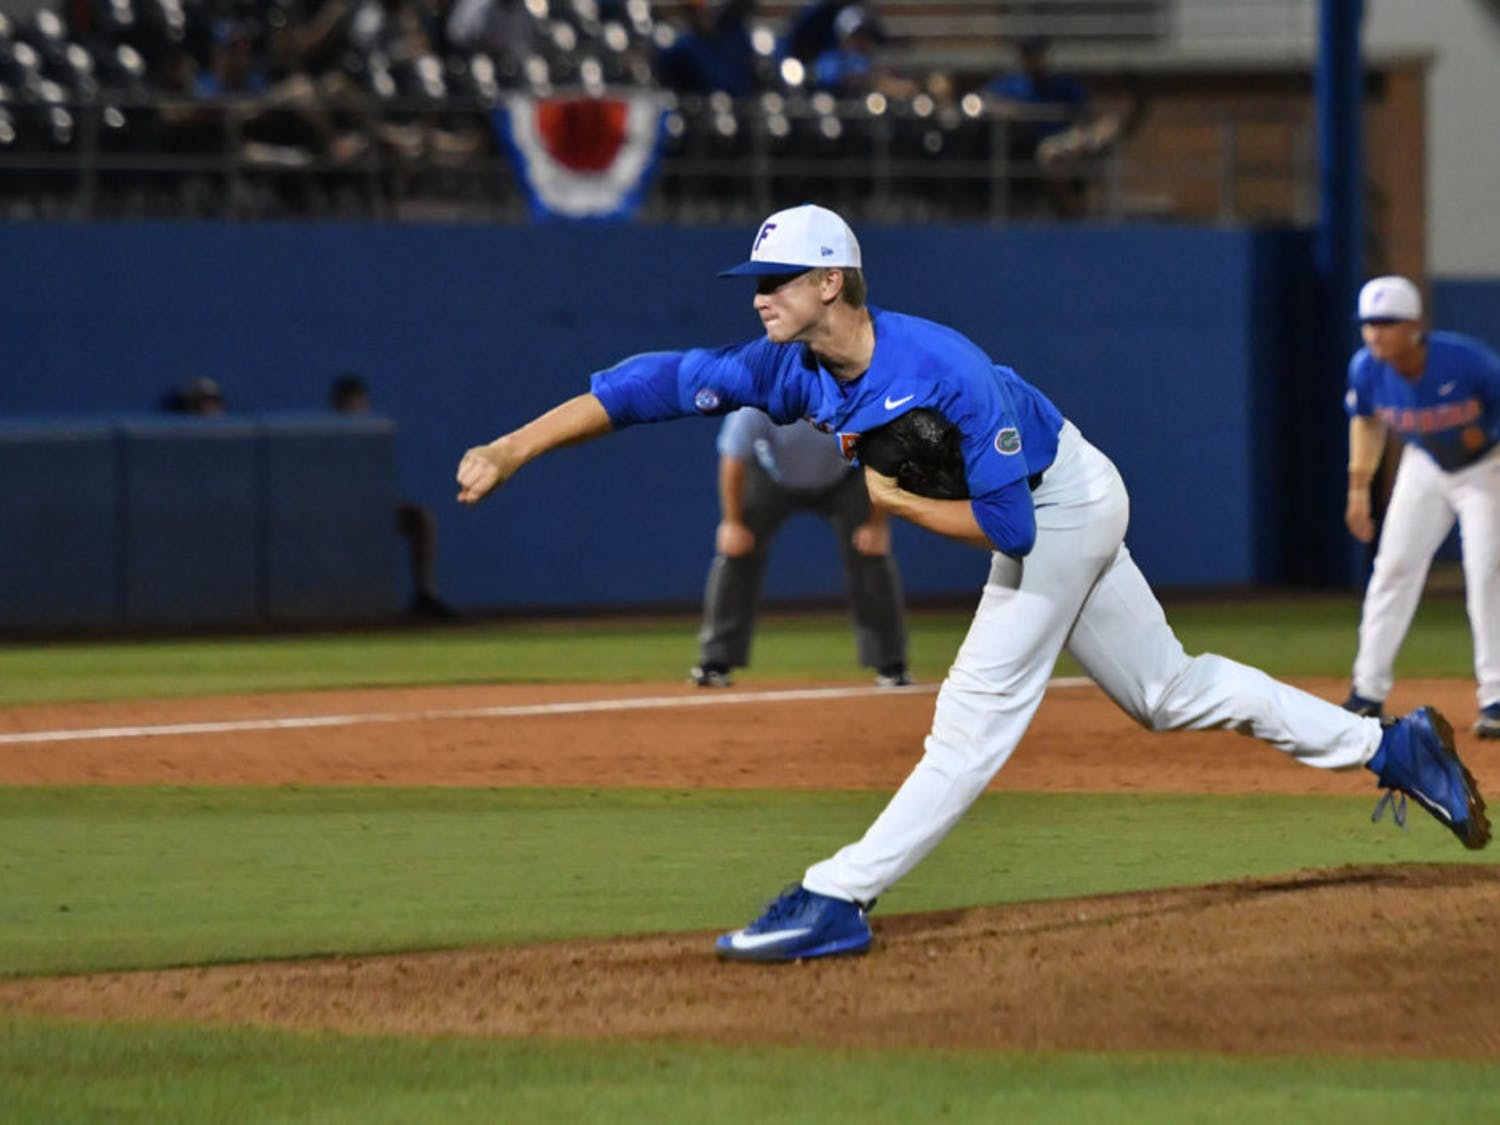 Pitcher Brady Singer allowed one run on two hits through seven innings Friday night against No. 8 Vanderbilt.